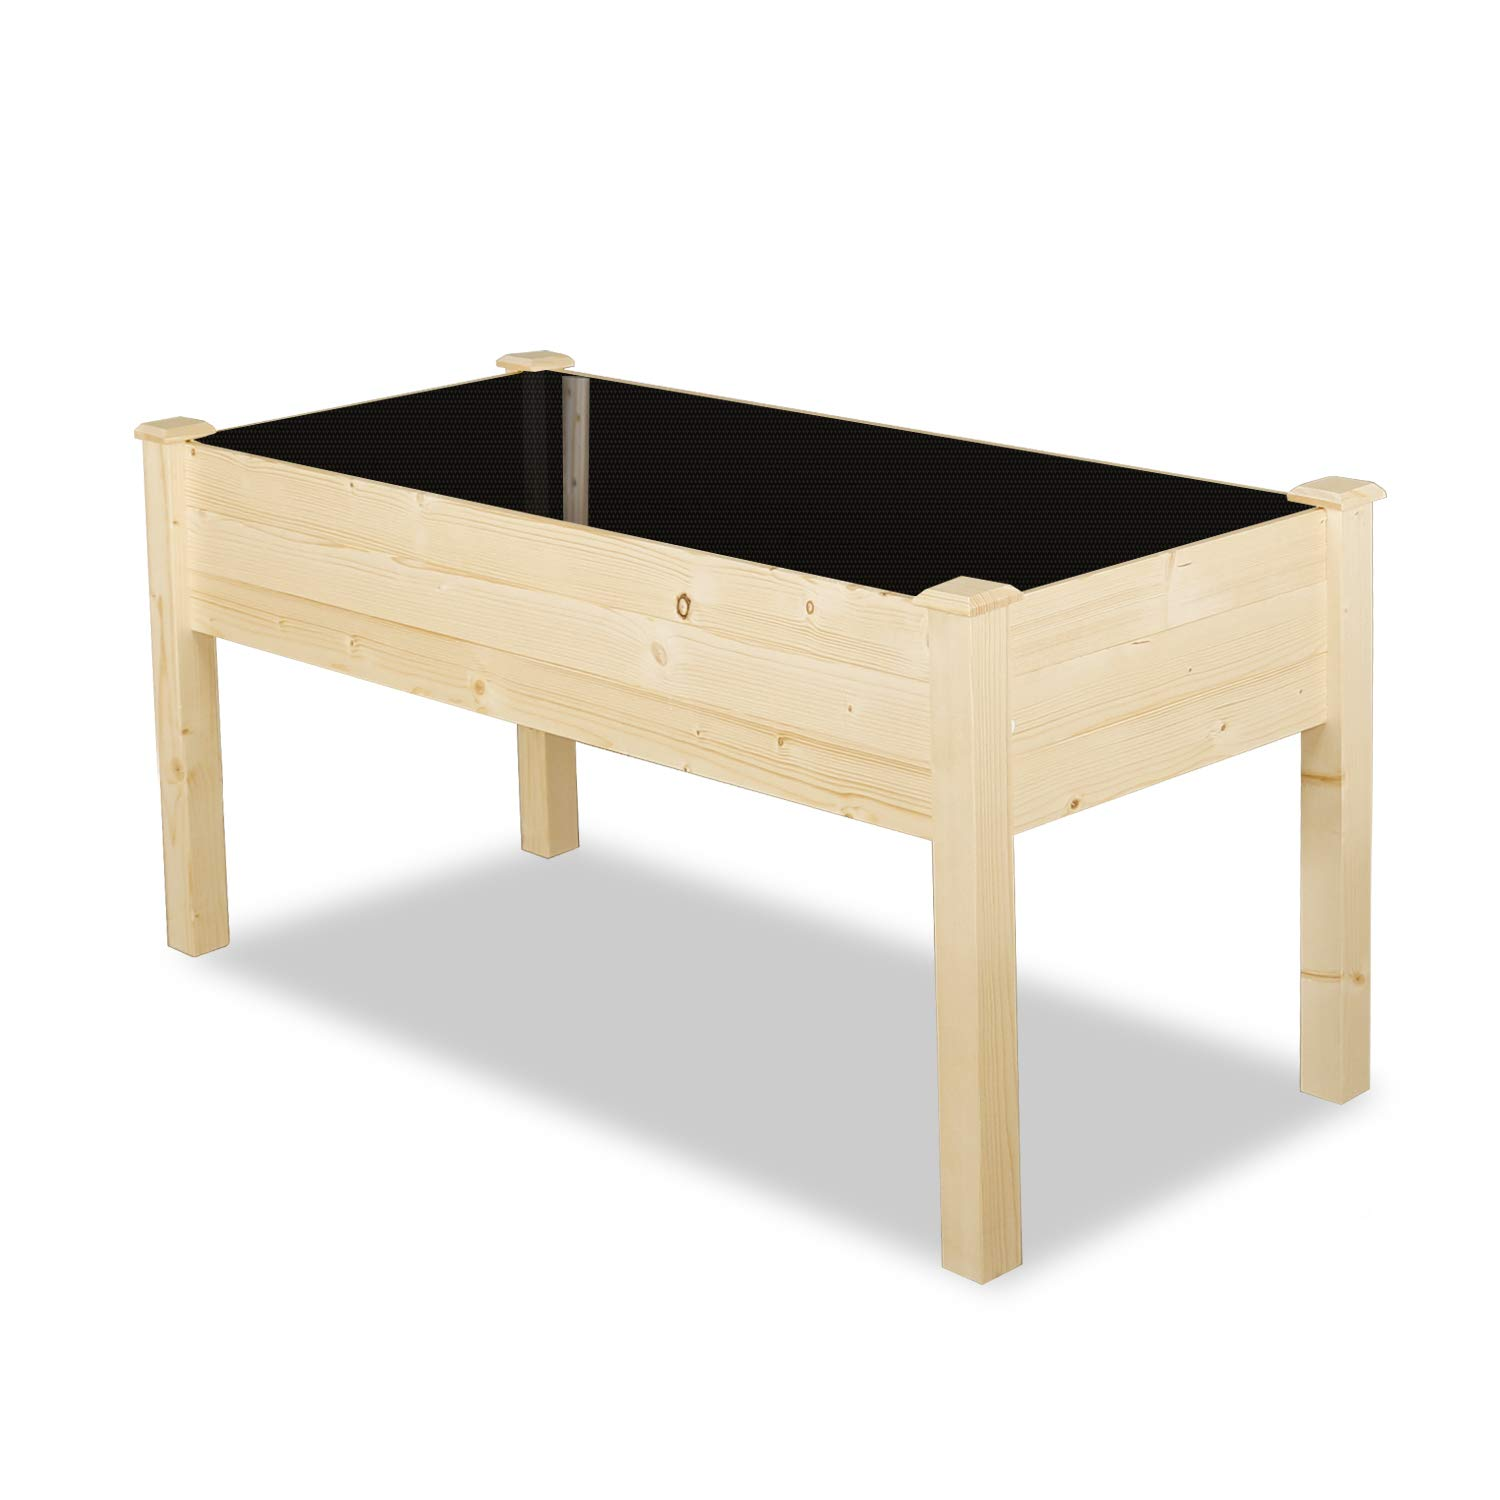 LYNSLIM Pure Wooden Raised Bed 48x22x8.6in Wood Planter Garden Bed Box for Fruit Vegetable, Easy Assembly